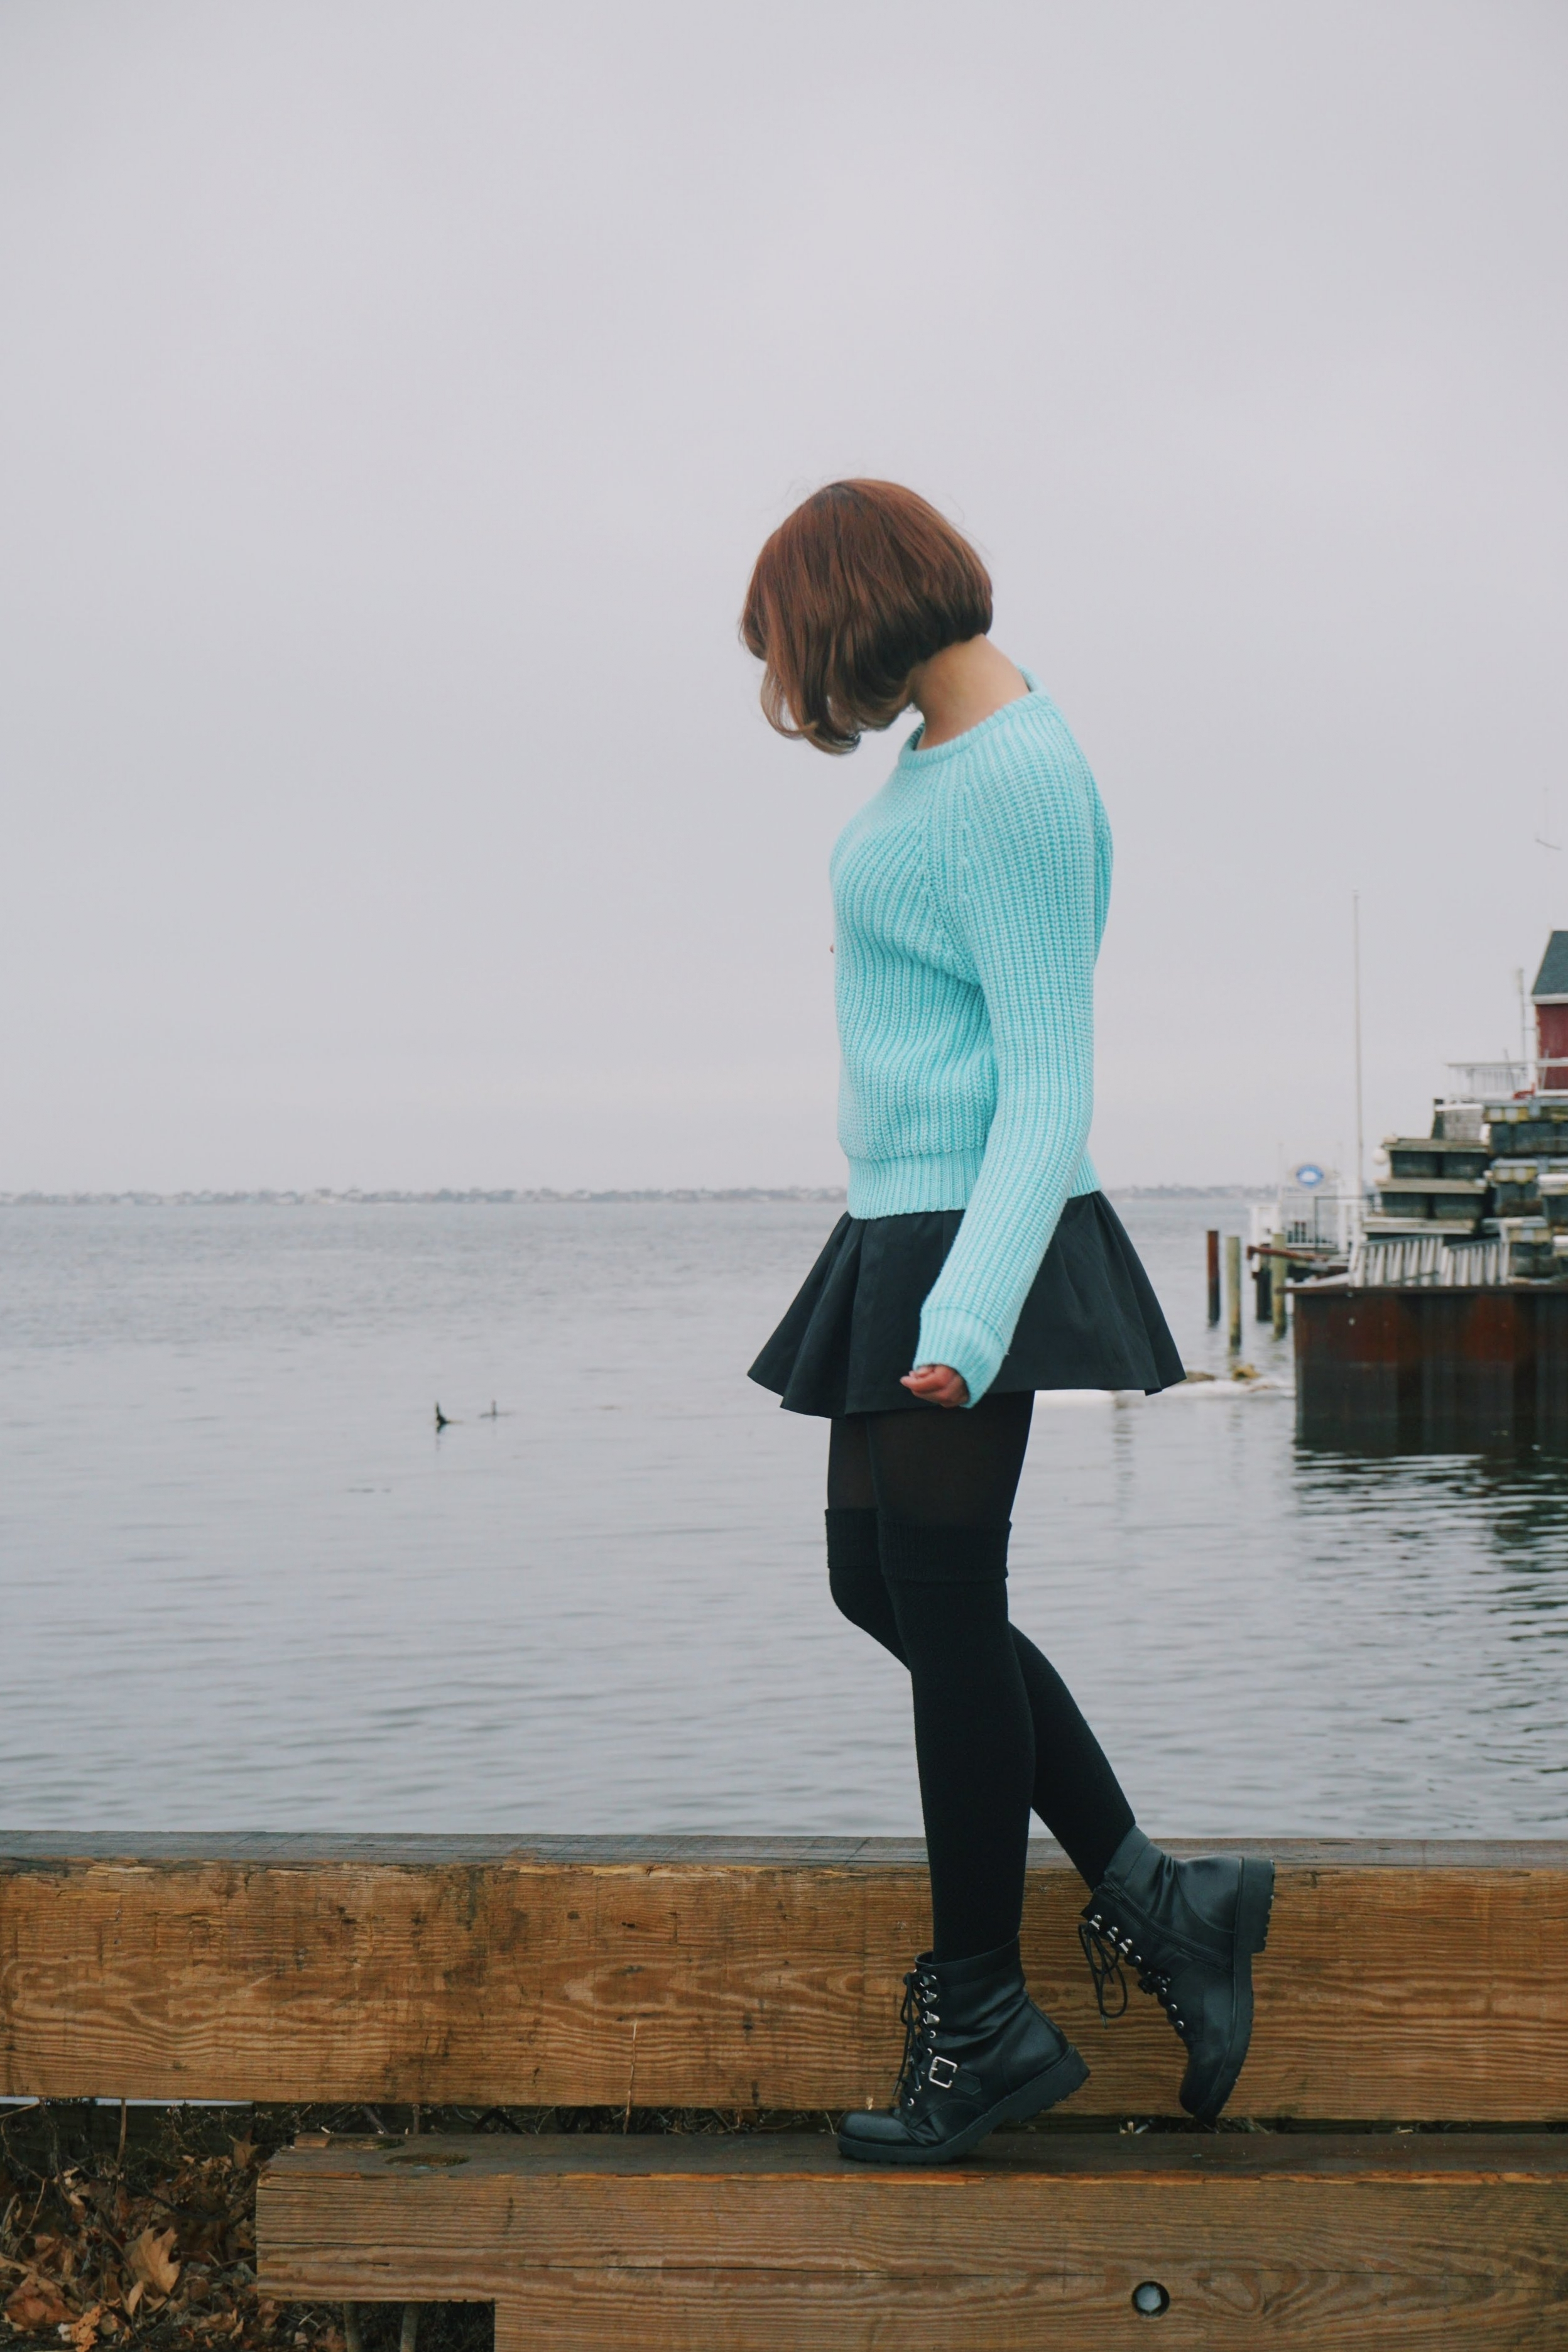 A photo of a girl standing near the ocean, looking down on her feet. She is wearing a blue sweater, short black skirt, black tights and over the knee socks, and black army-style boots.